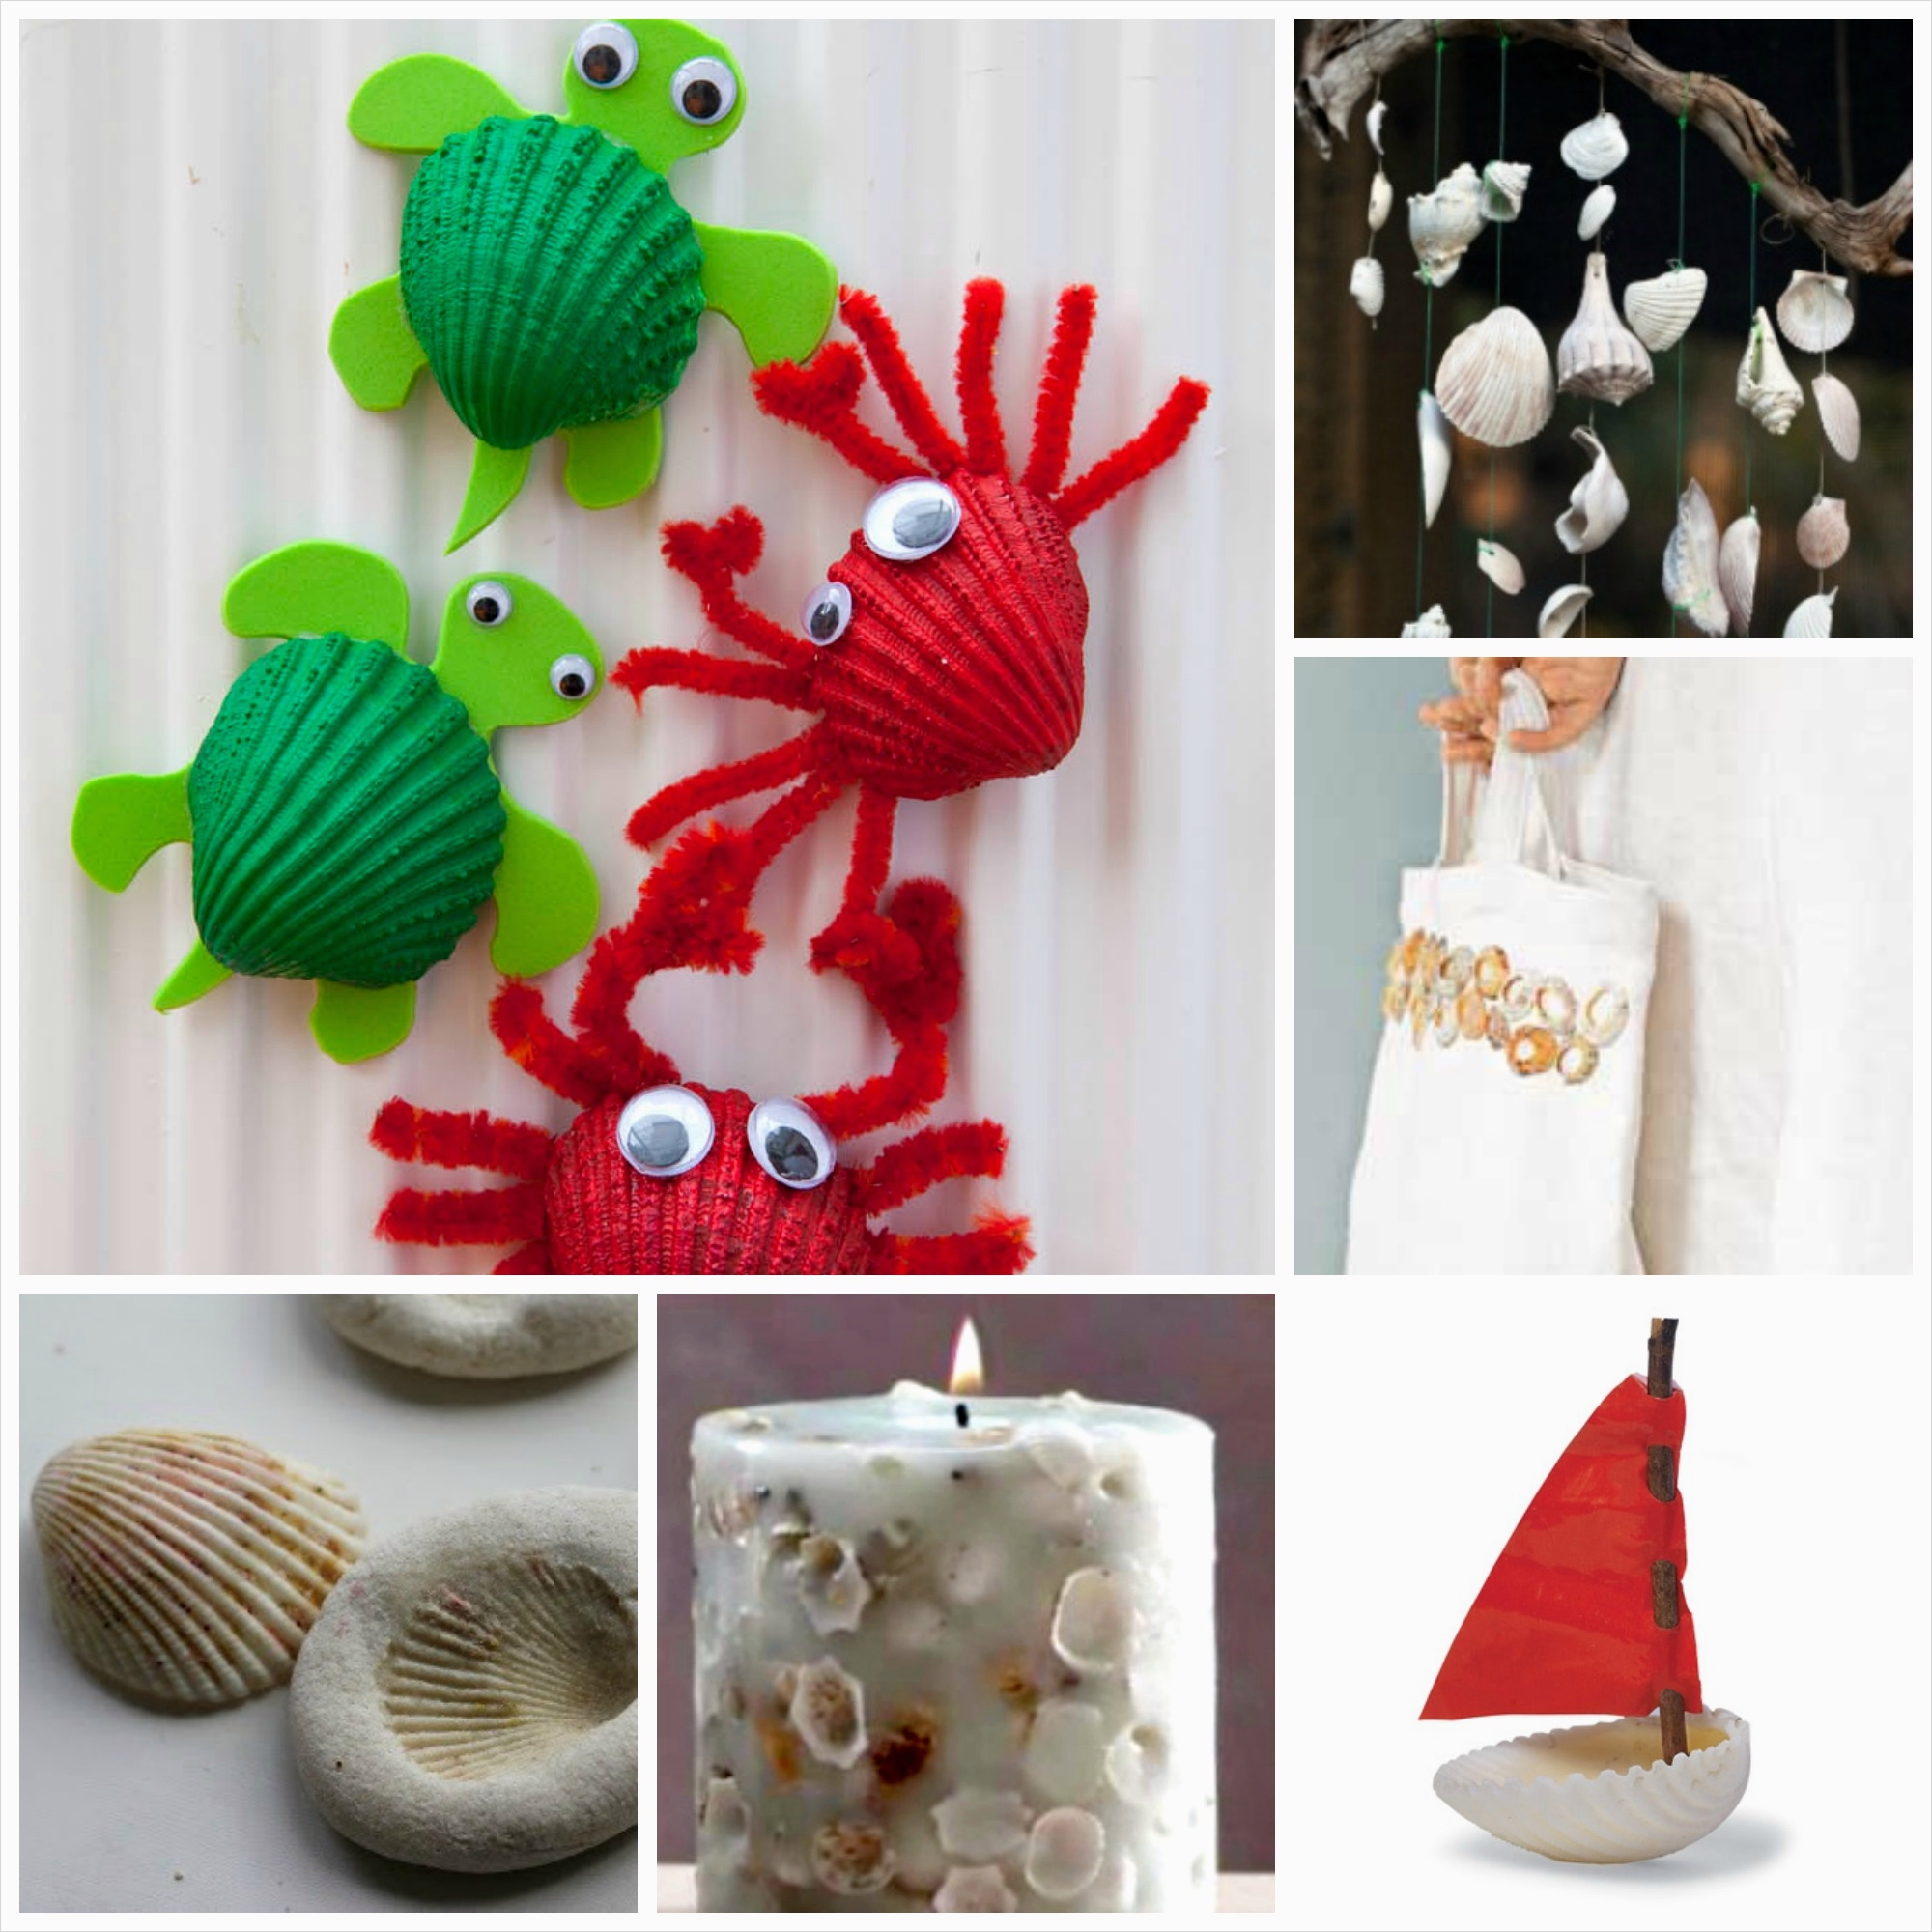 40 Diy Easy Seashell Craft Ideas 48 37 Sea Shell Craft Ideas Red Ted Art S Blog 4